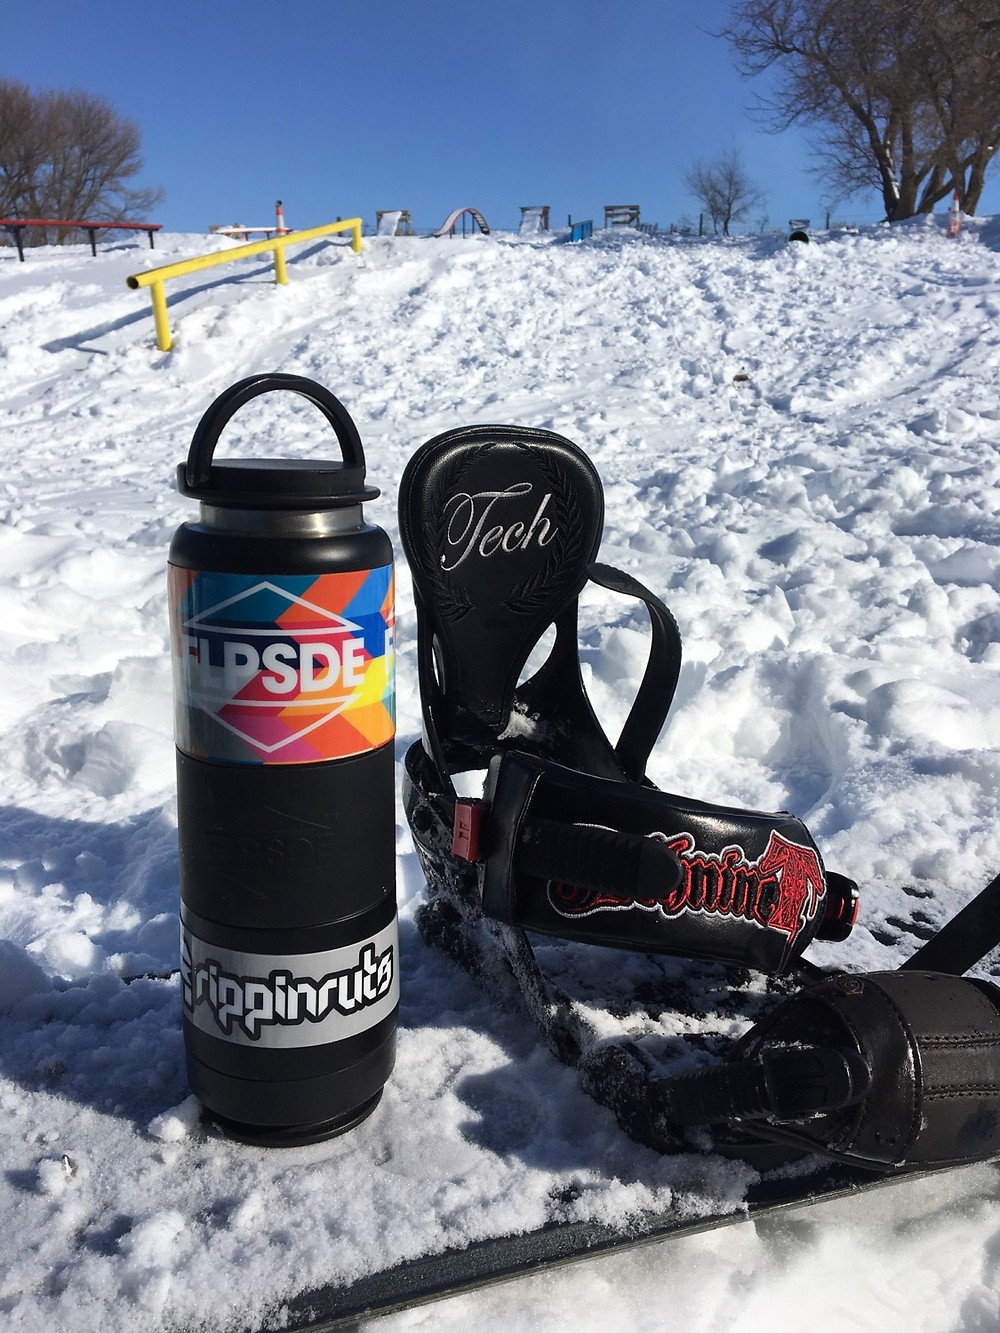 FLPSDE Dual Chamber Water Bottles. The best water bottles with storage for snacks and more.